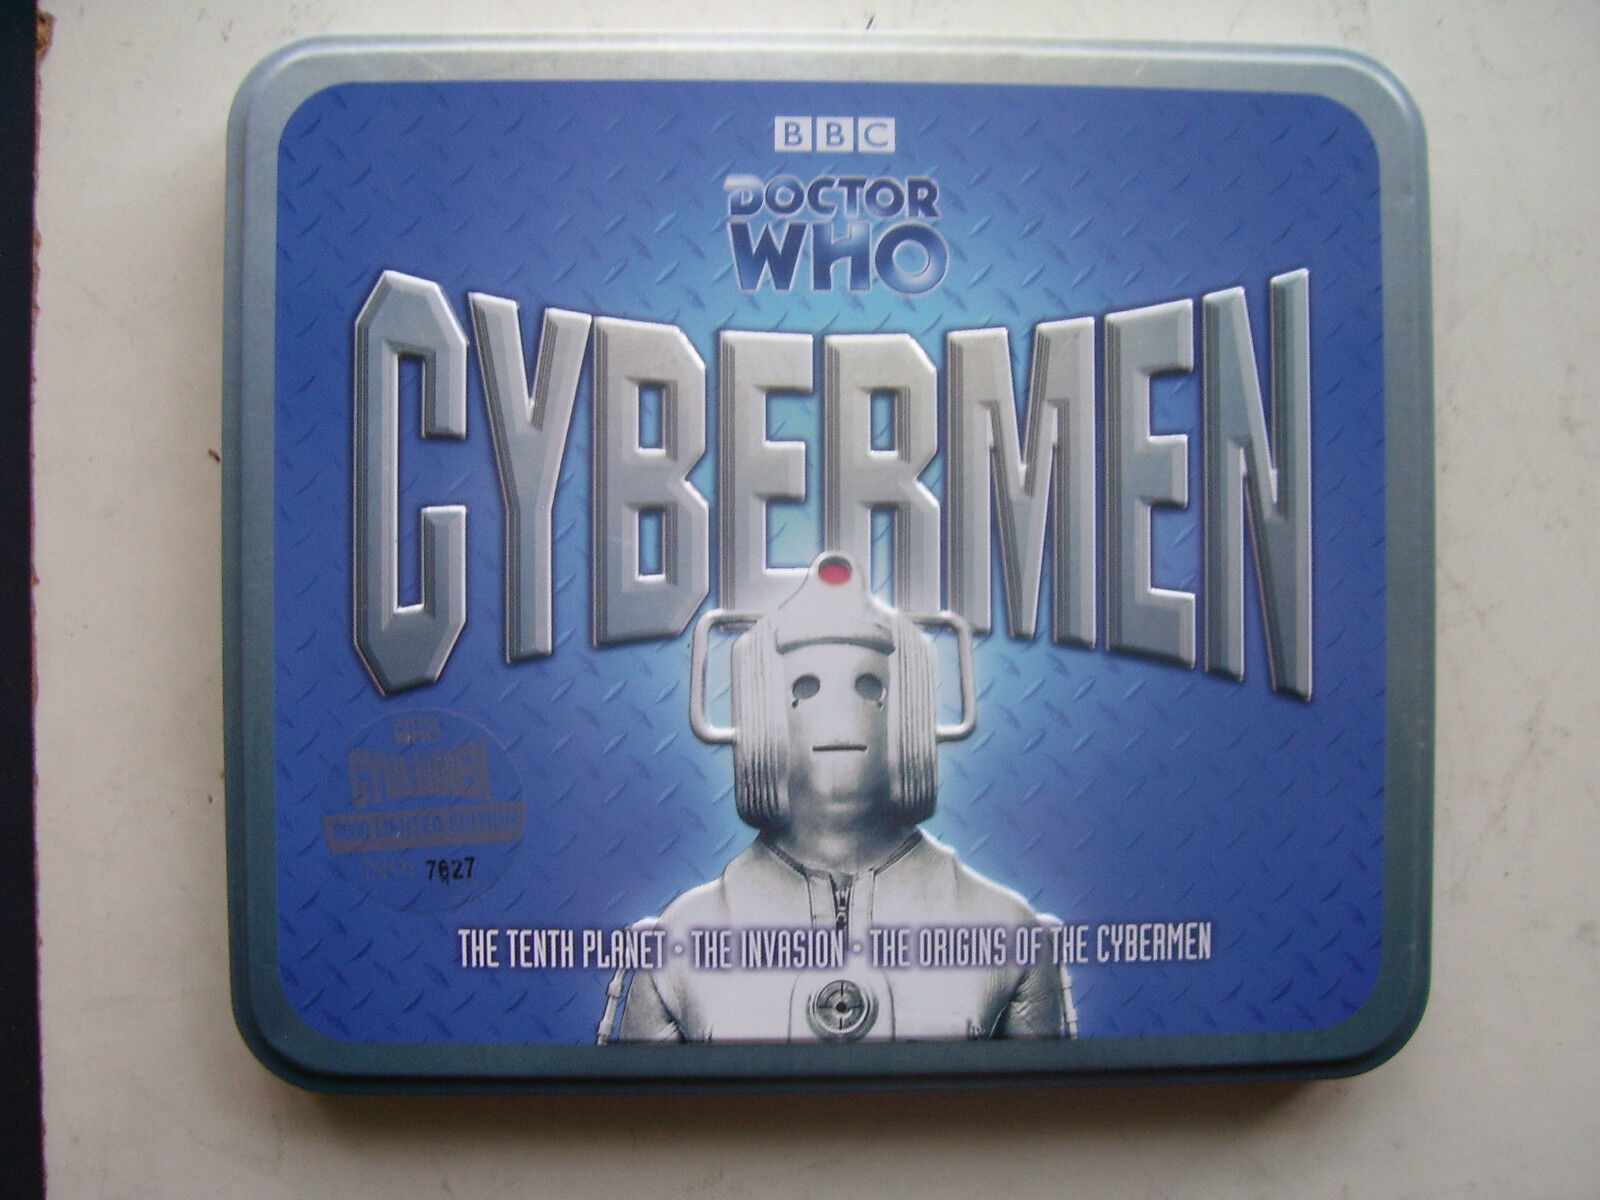 Doctor Who The Cybermen Limited  CD Tin Set  No 7627